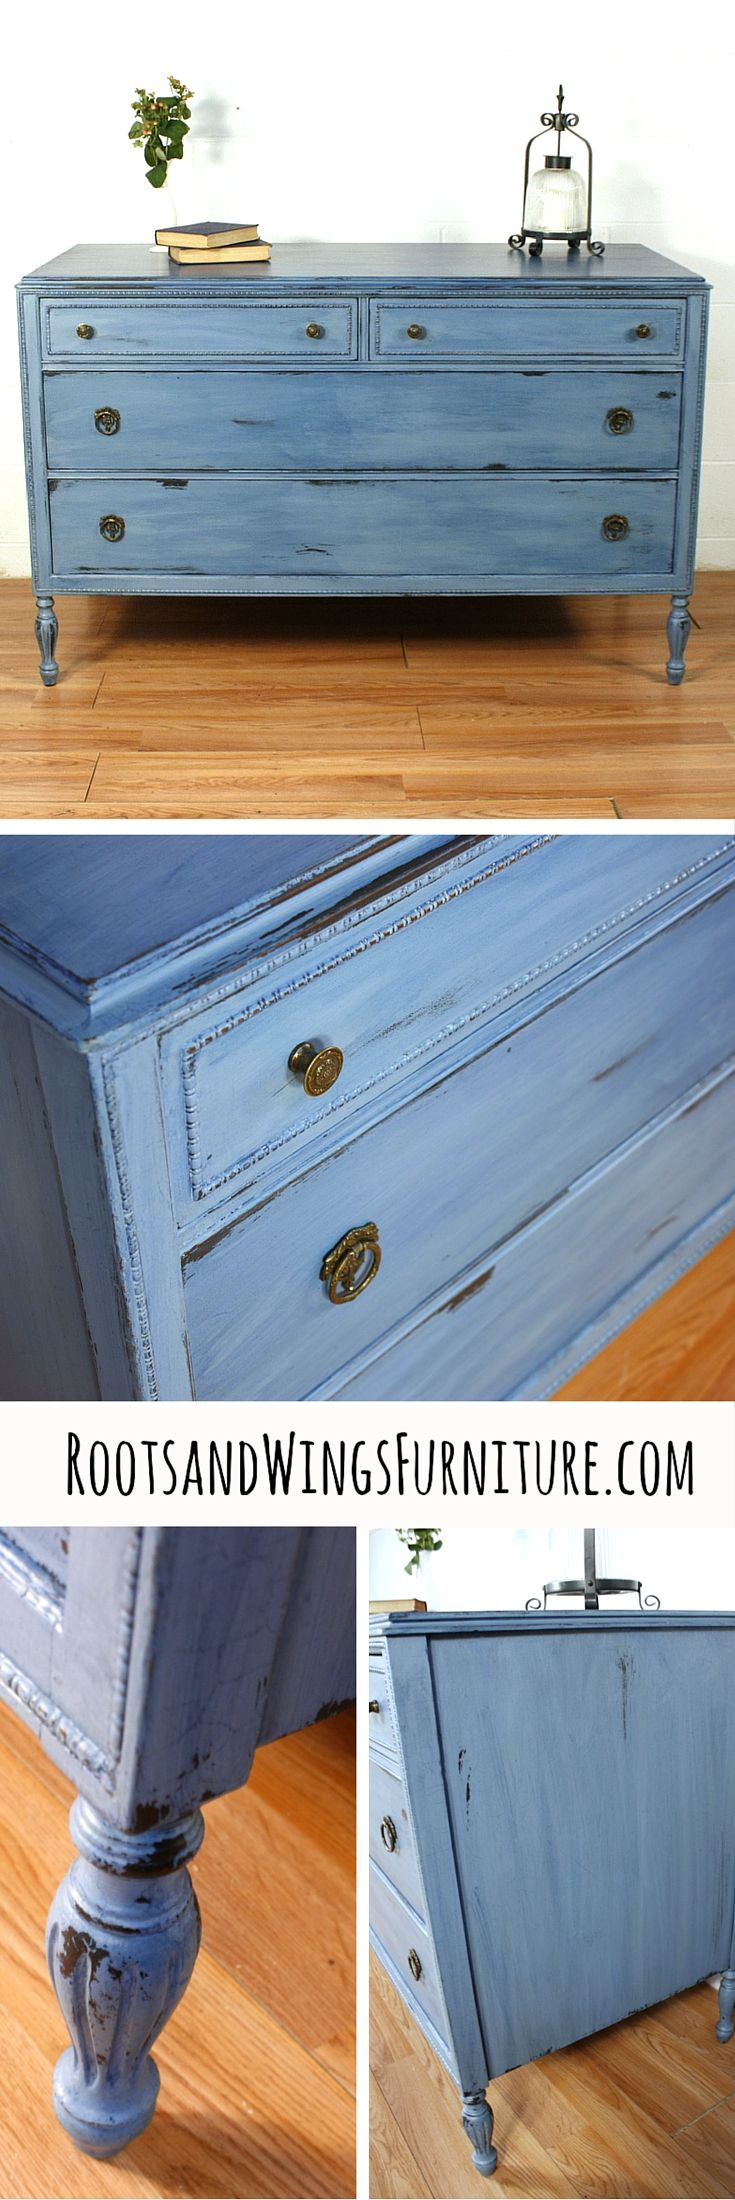 Antique dresser refinished in General Finishes Stillwater Blue by Roots and Wings Furniture. Color-washed with Coastal Blue Milk Paint.